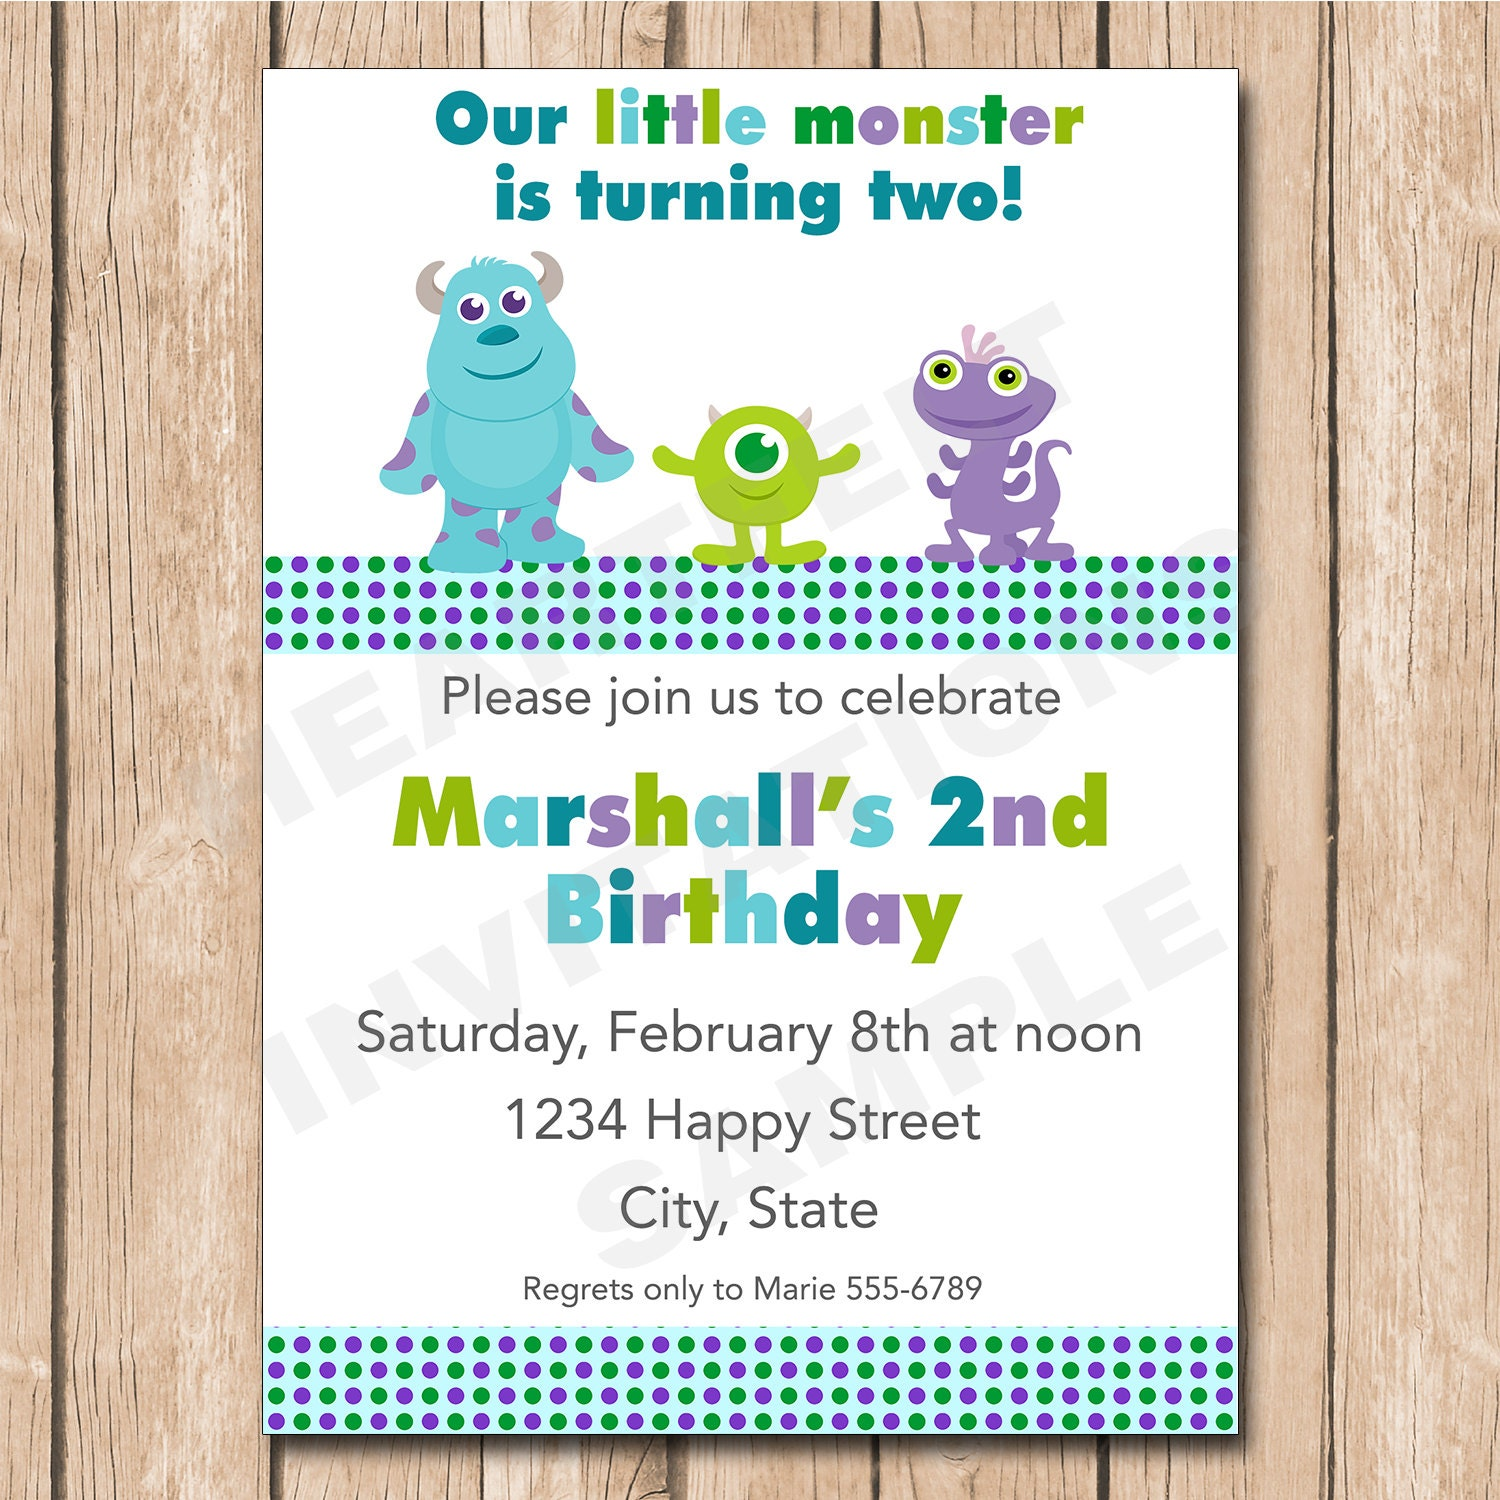 Mini Monsters Inc. Birthday Invitation Sulley Mike Randal | Etsy